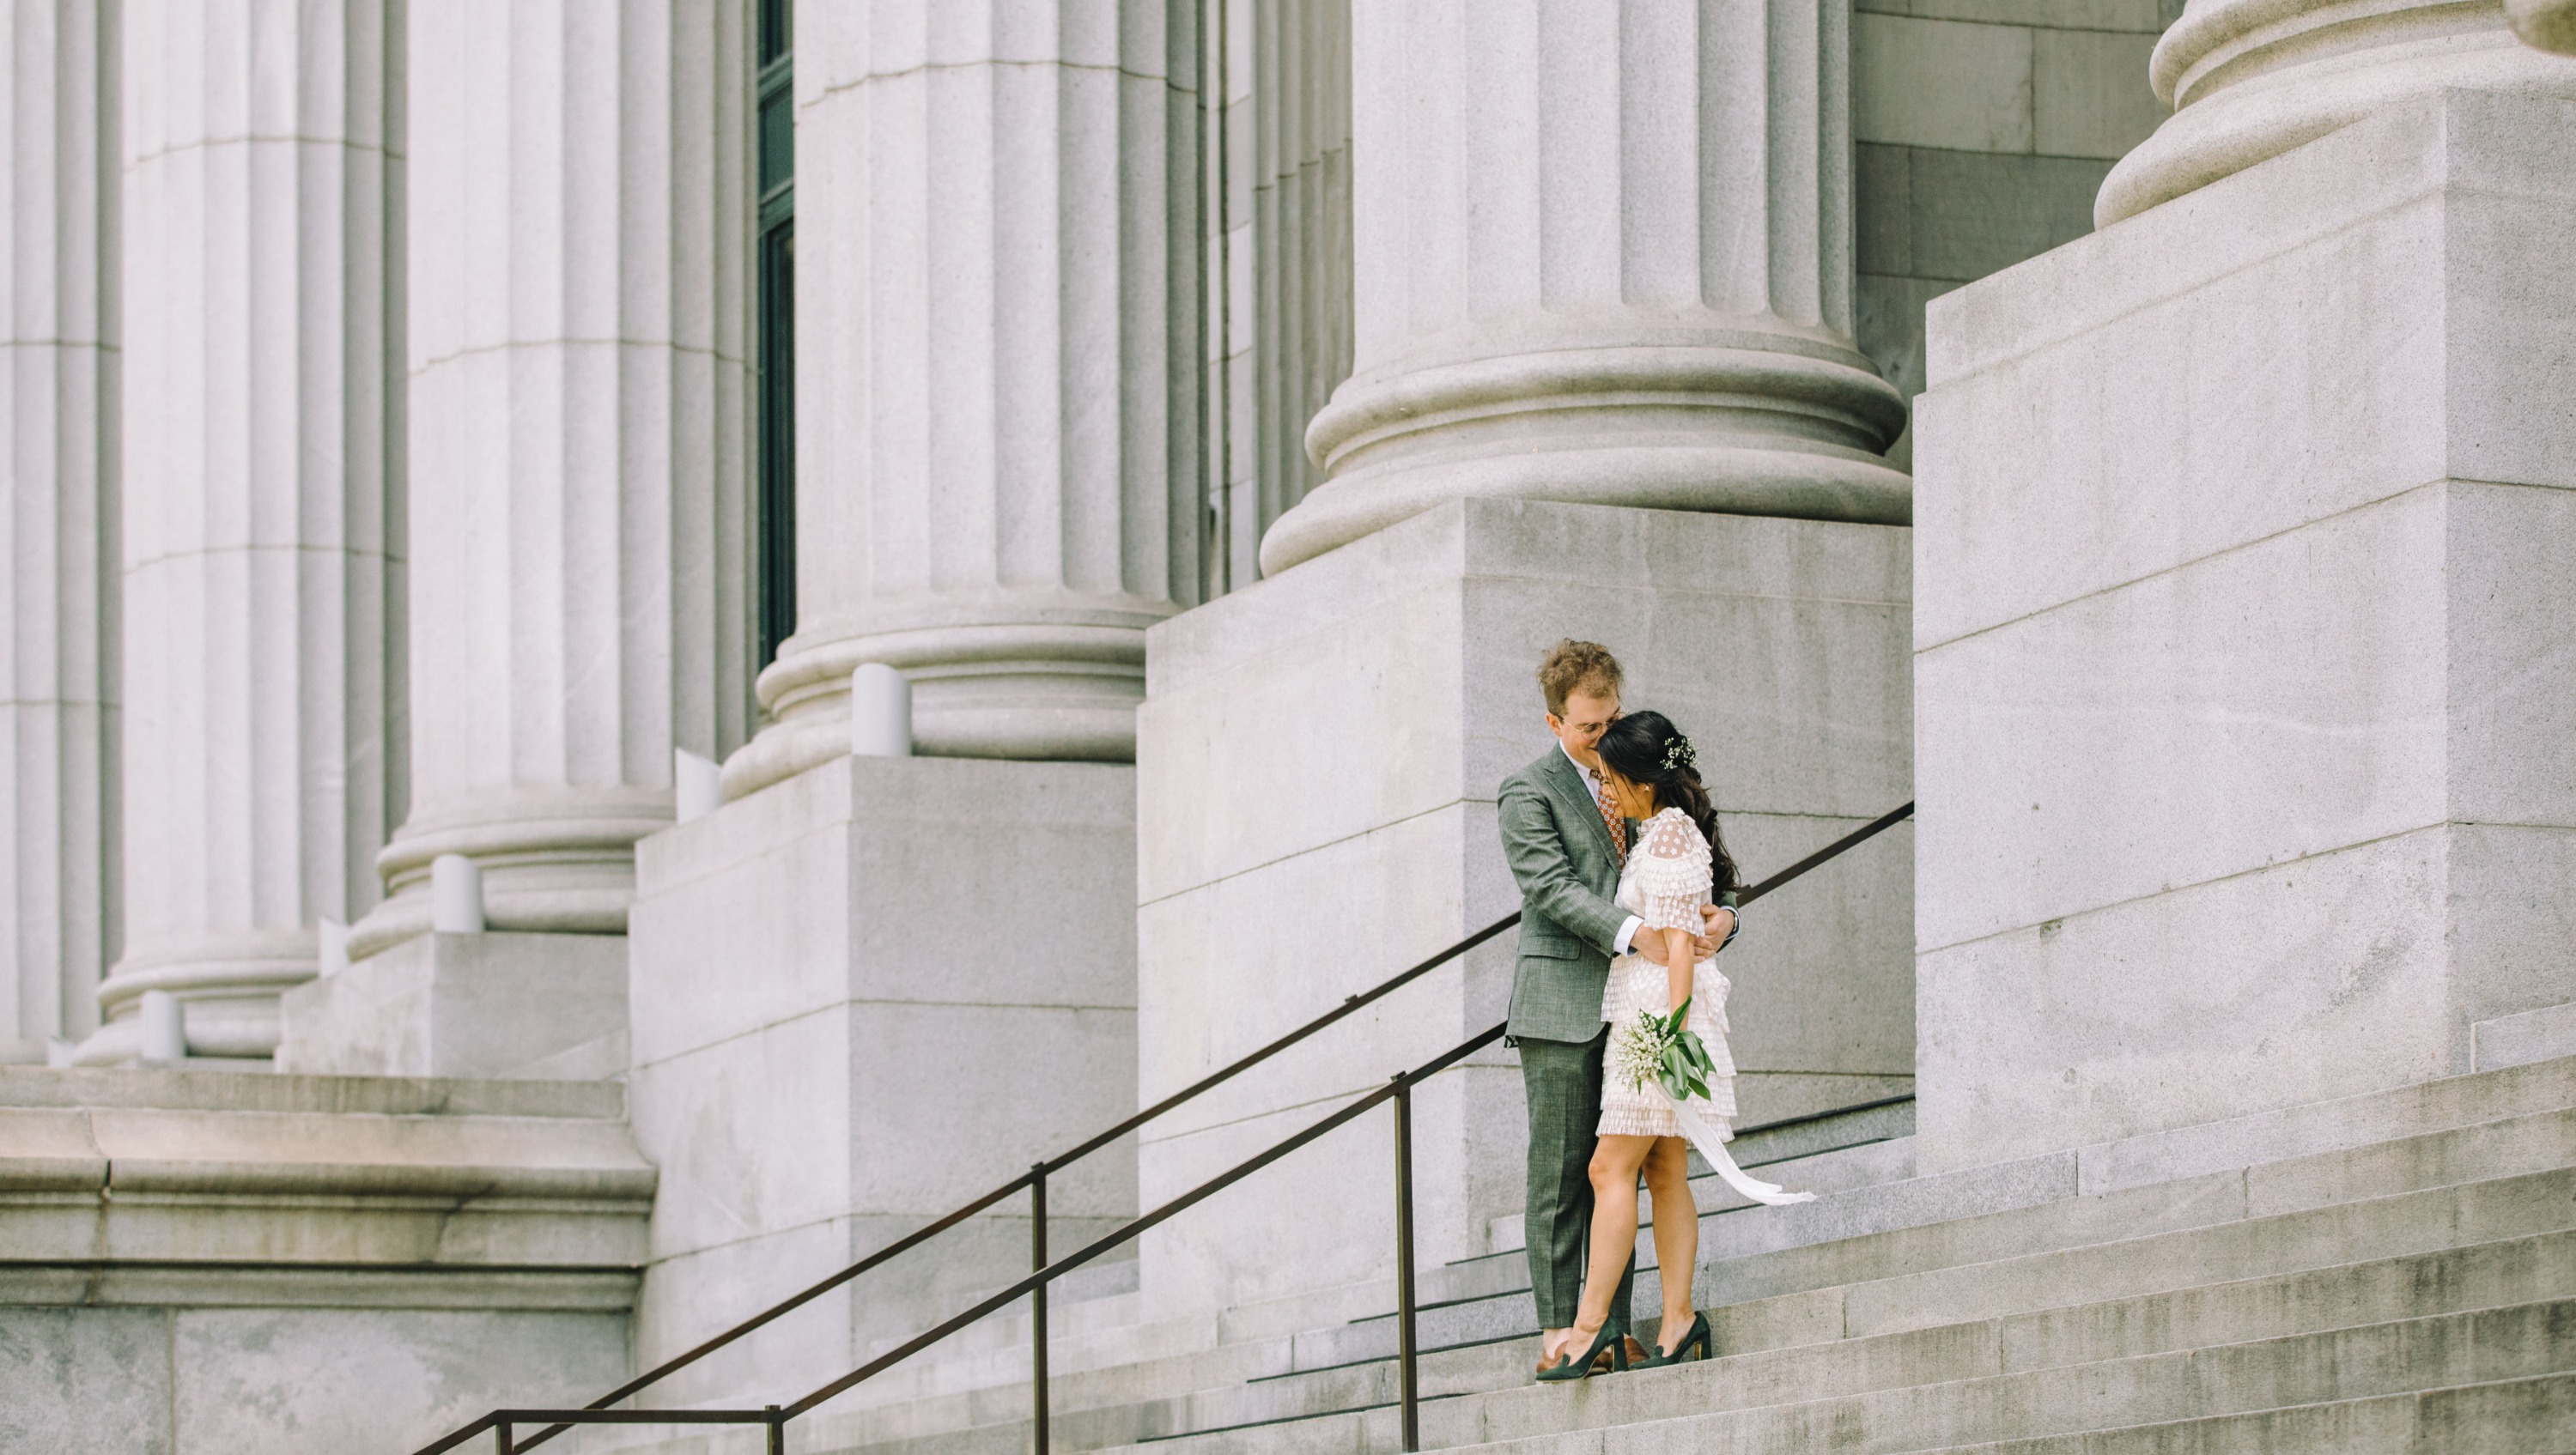 mariage montreal photographe vieux-montreal couple wedding photographer intimate weddings mariage in